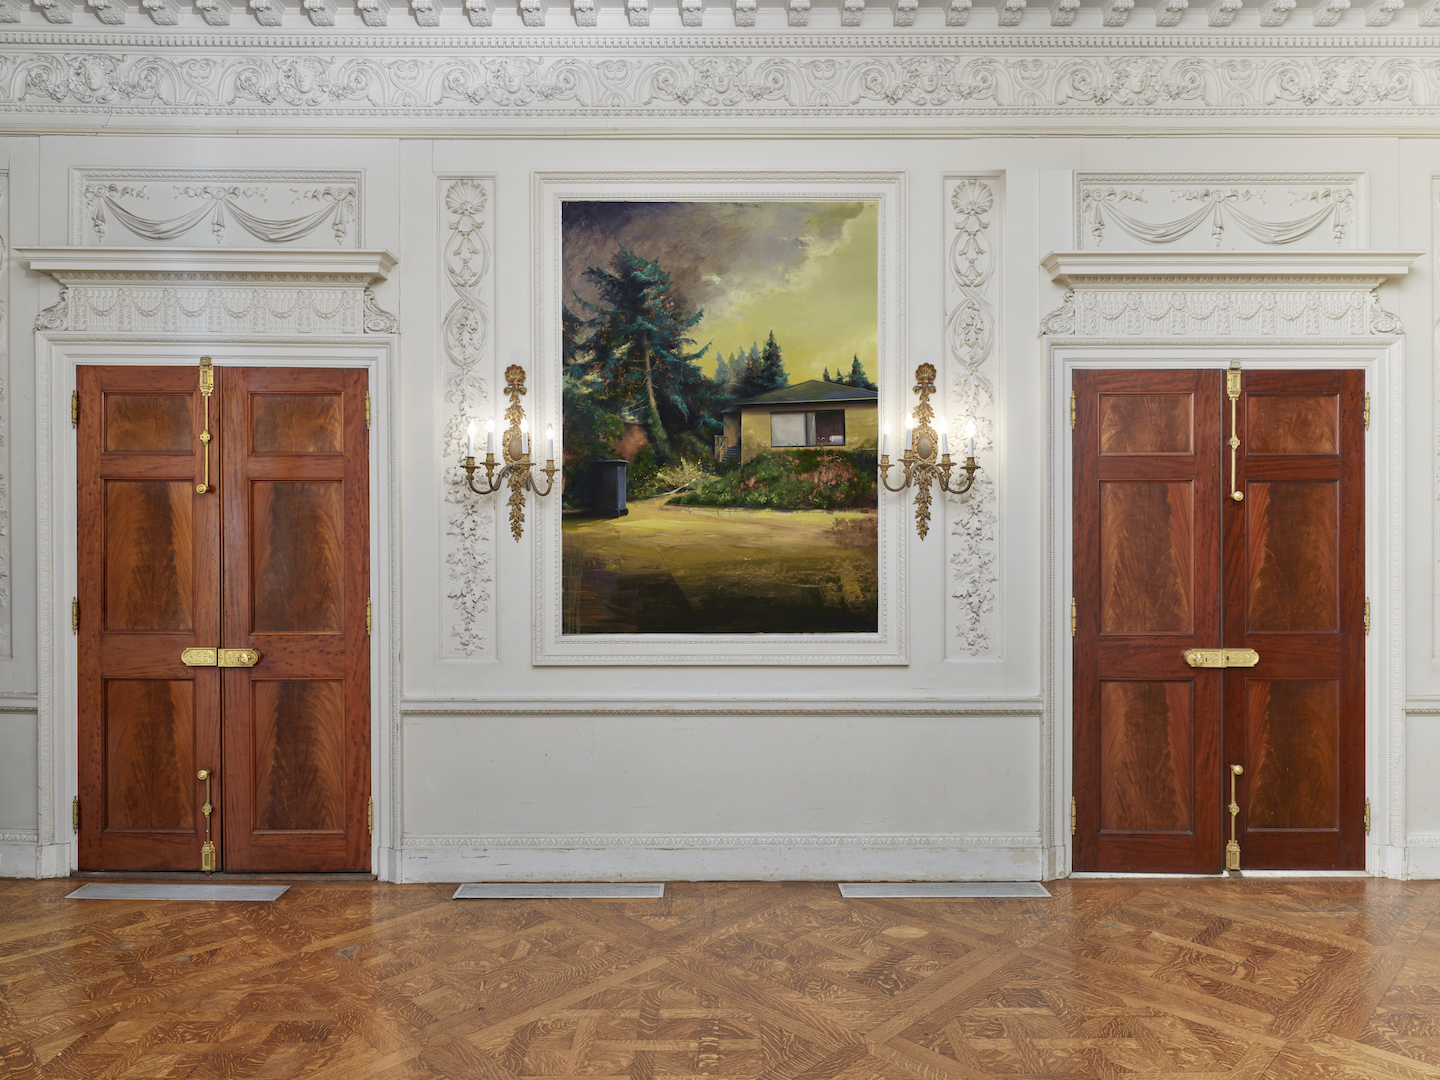 20_Goethe_ Installation View.jpg